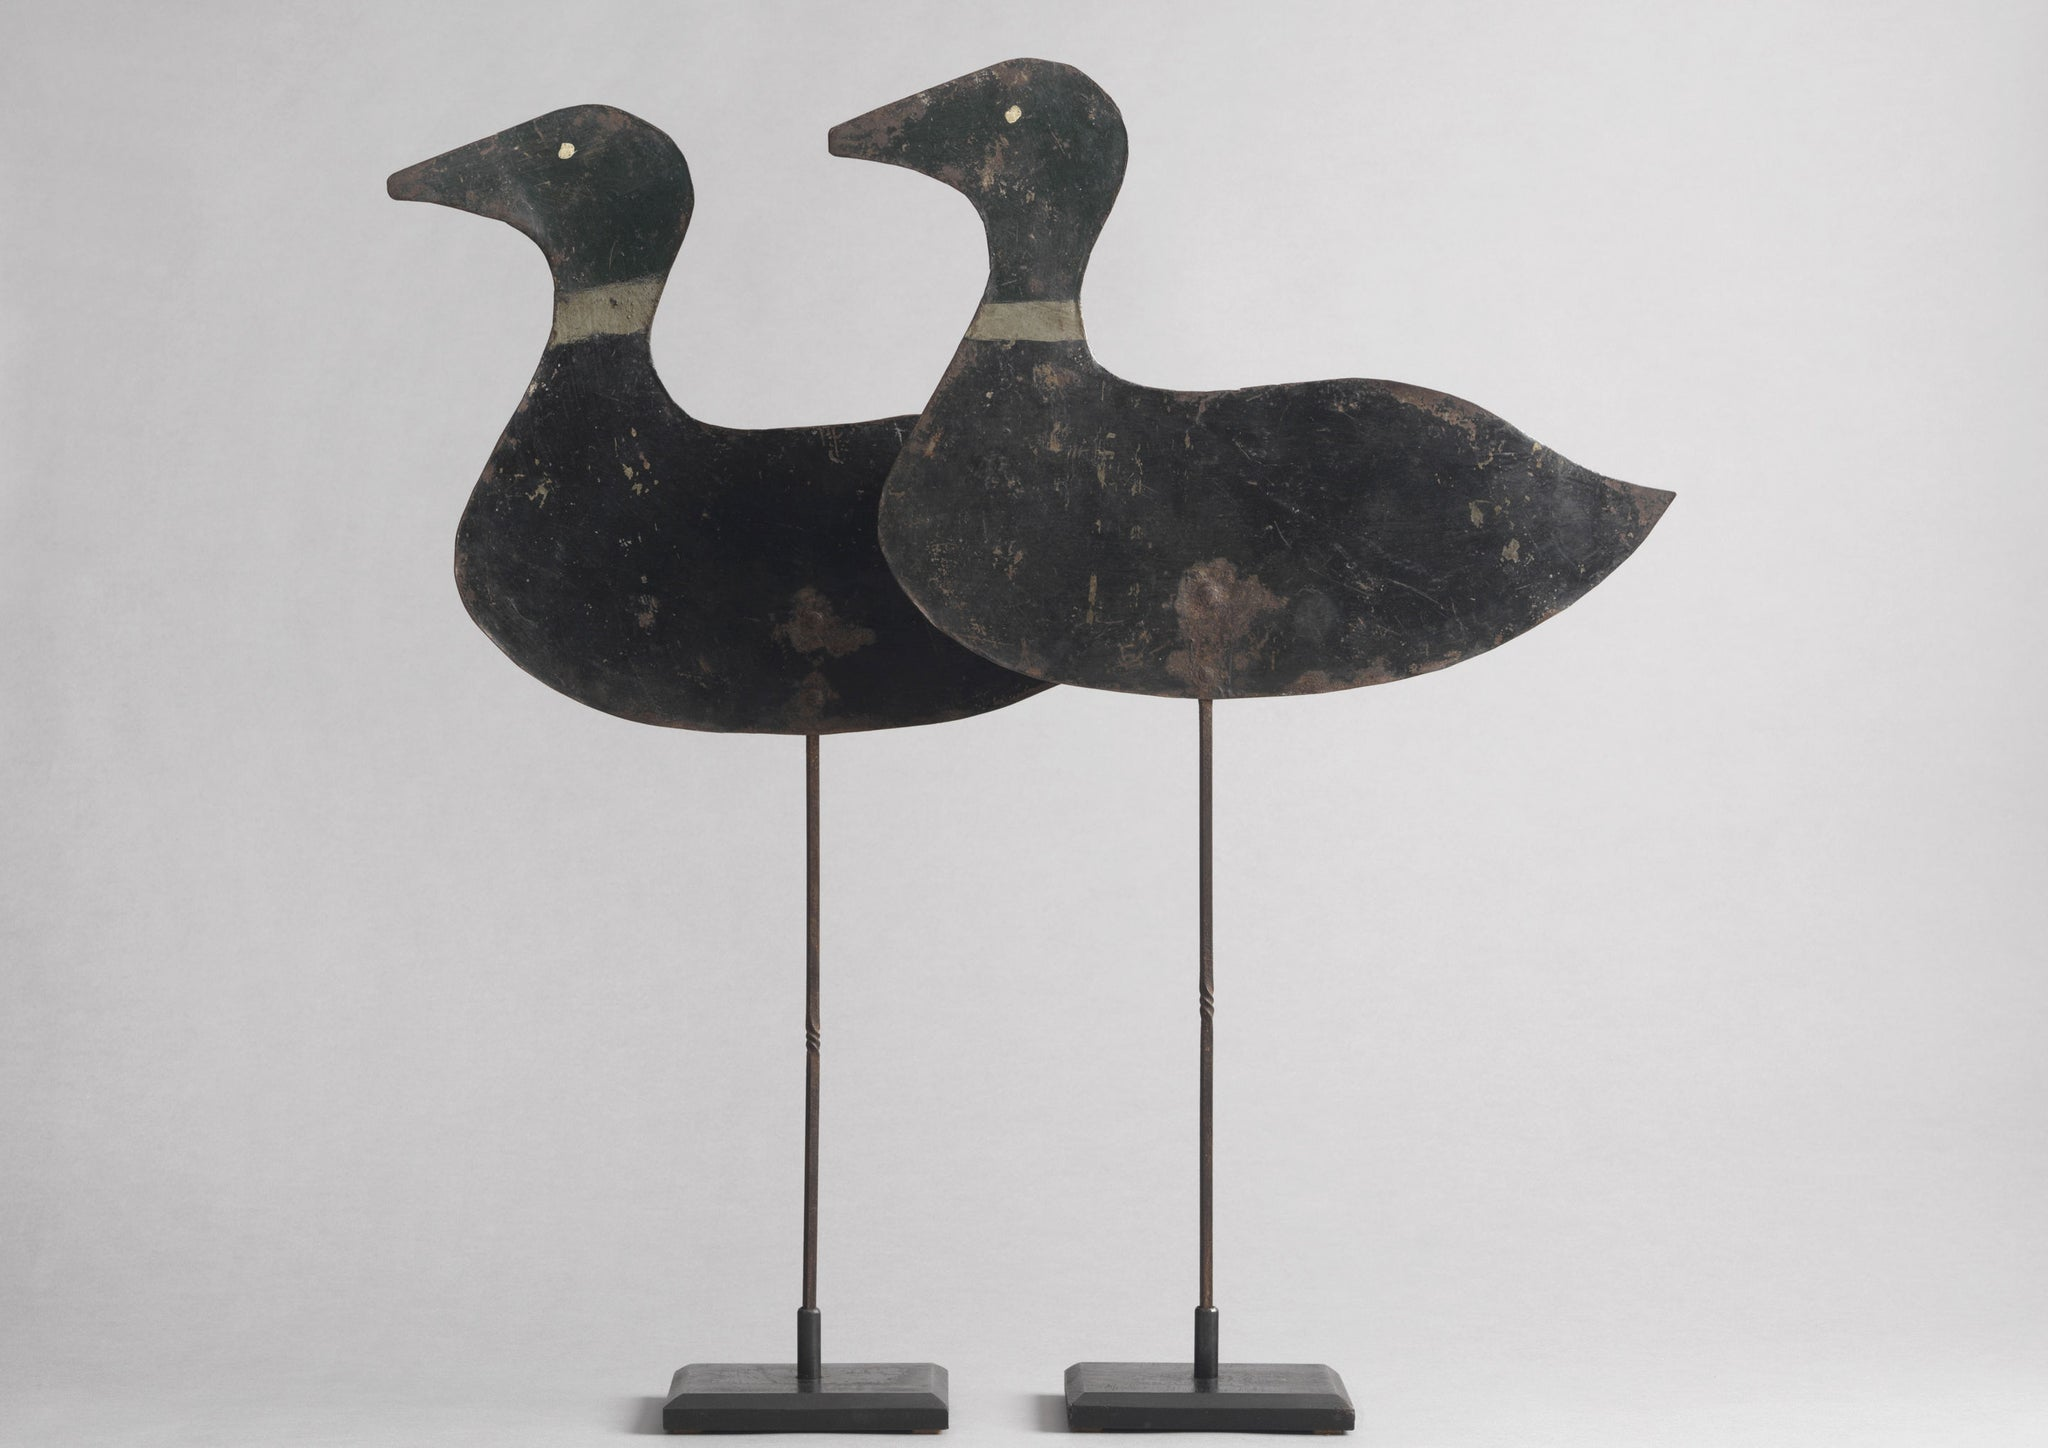 Pair of Working Silhouette Mallard Drake Confidence Decoys